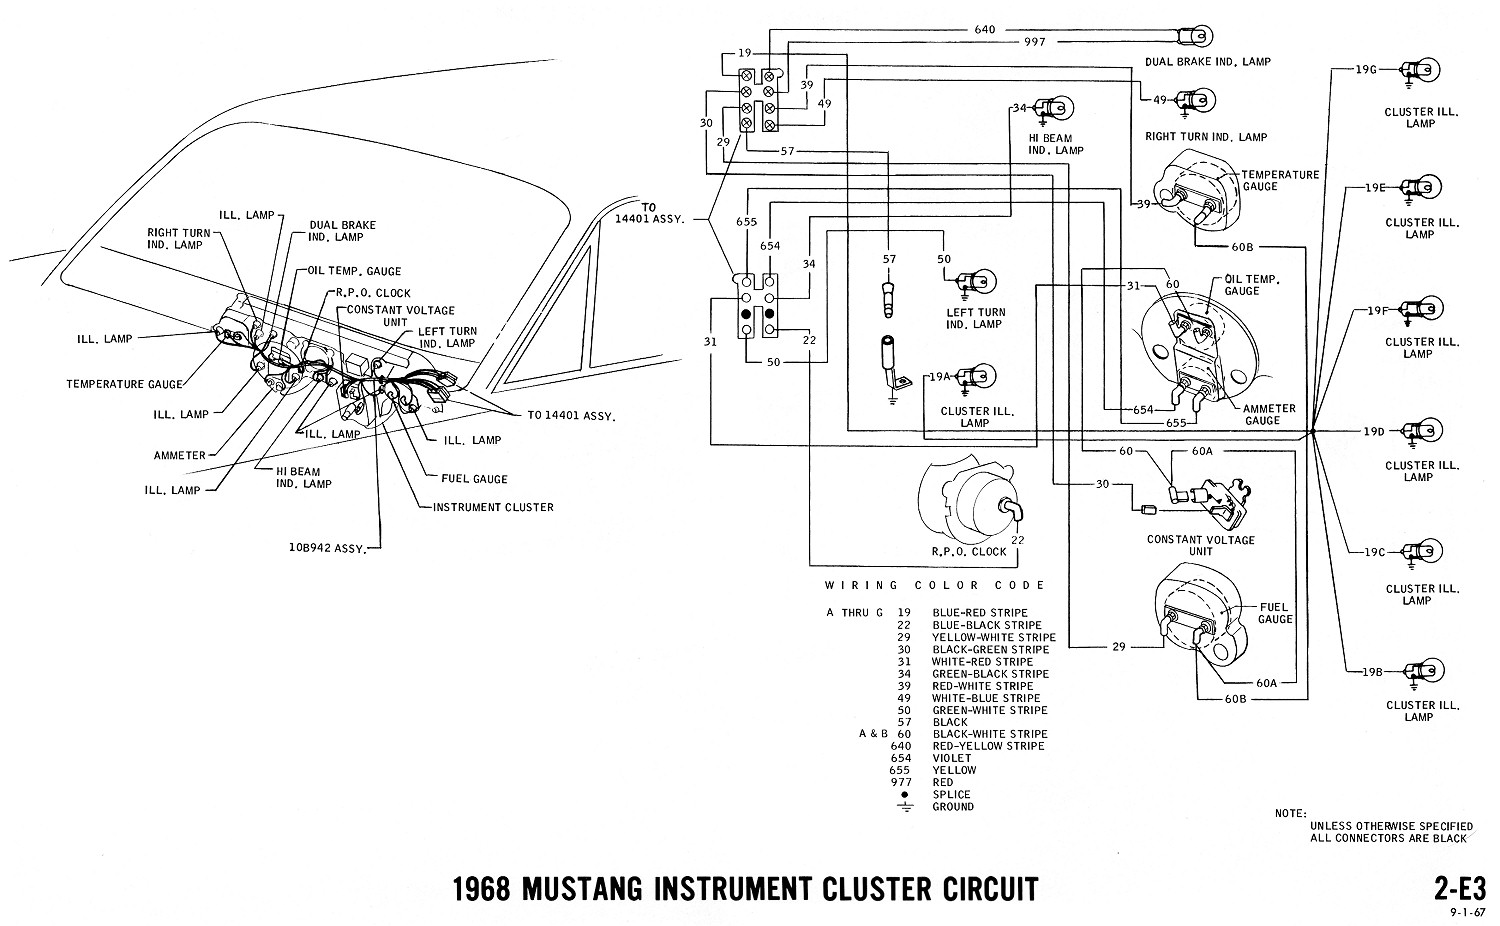 E3 1968 mustang wiring diagrams evolving software instrument wiring diagram at honlapkeszites.co